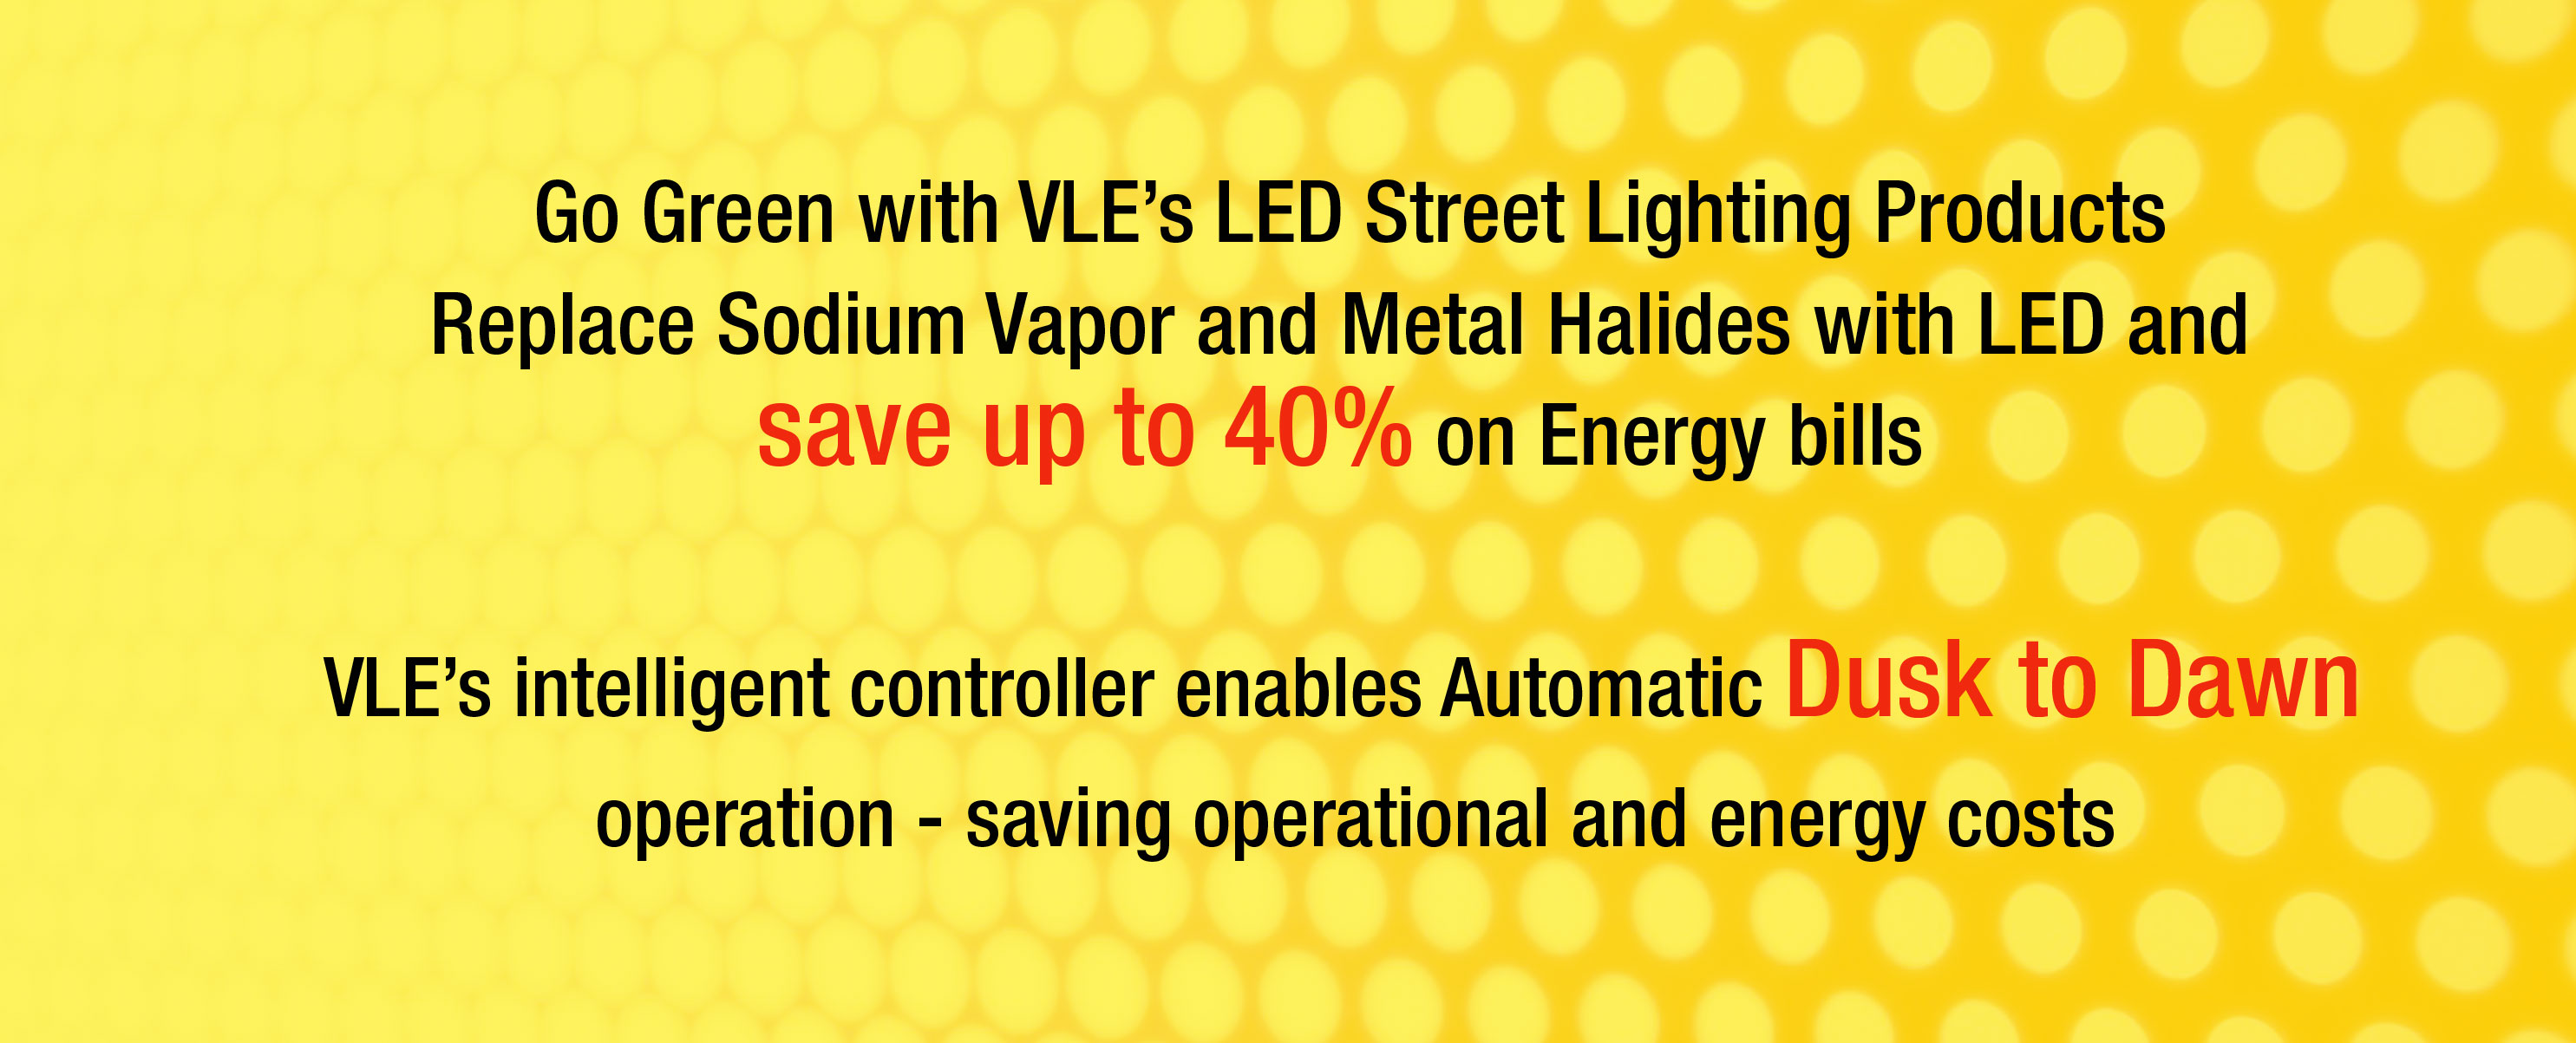 VLEINDIA Street Lighting products